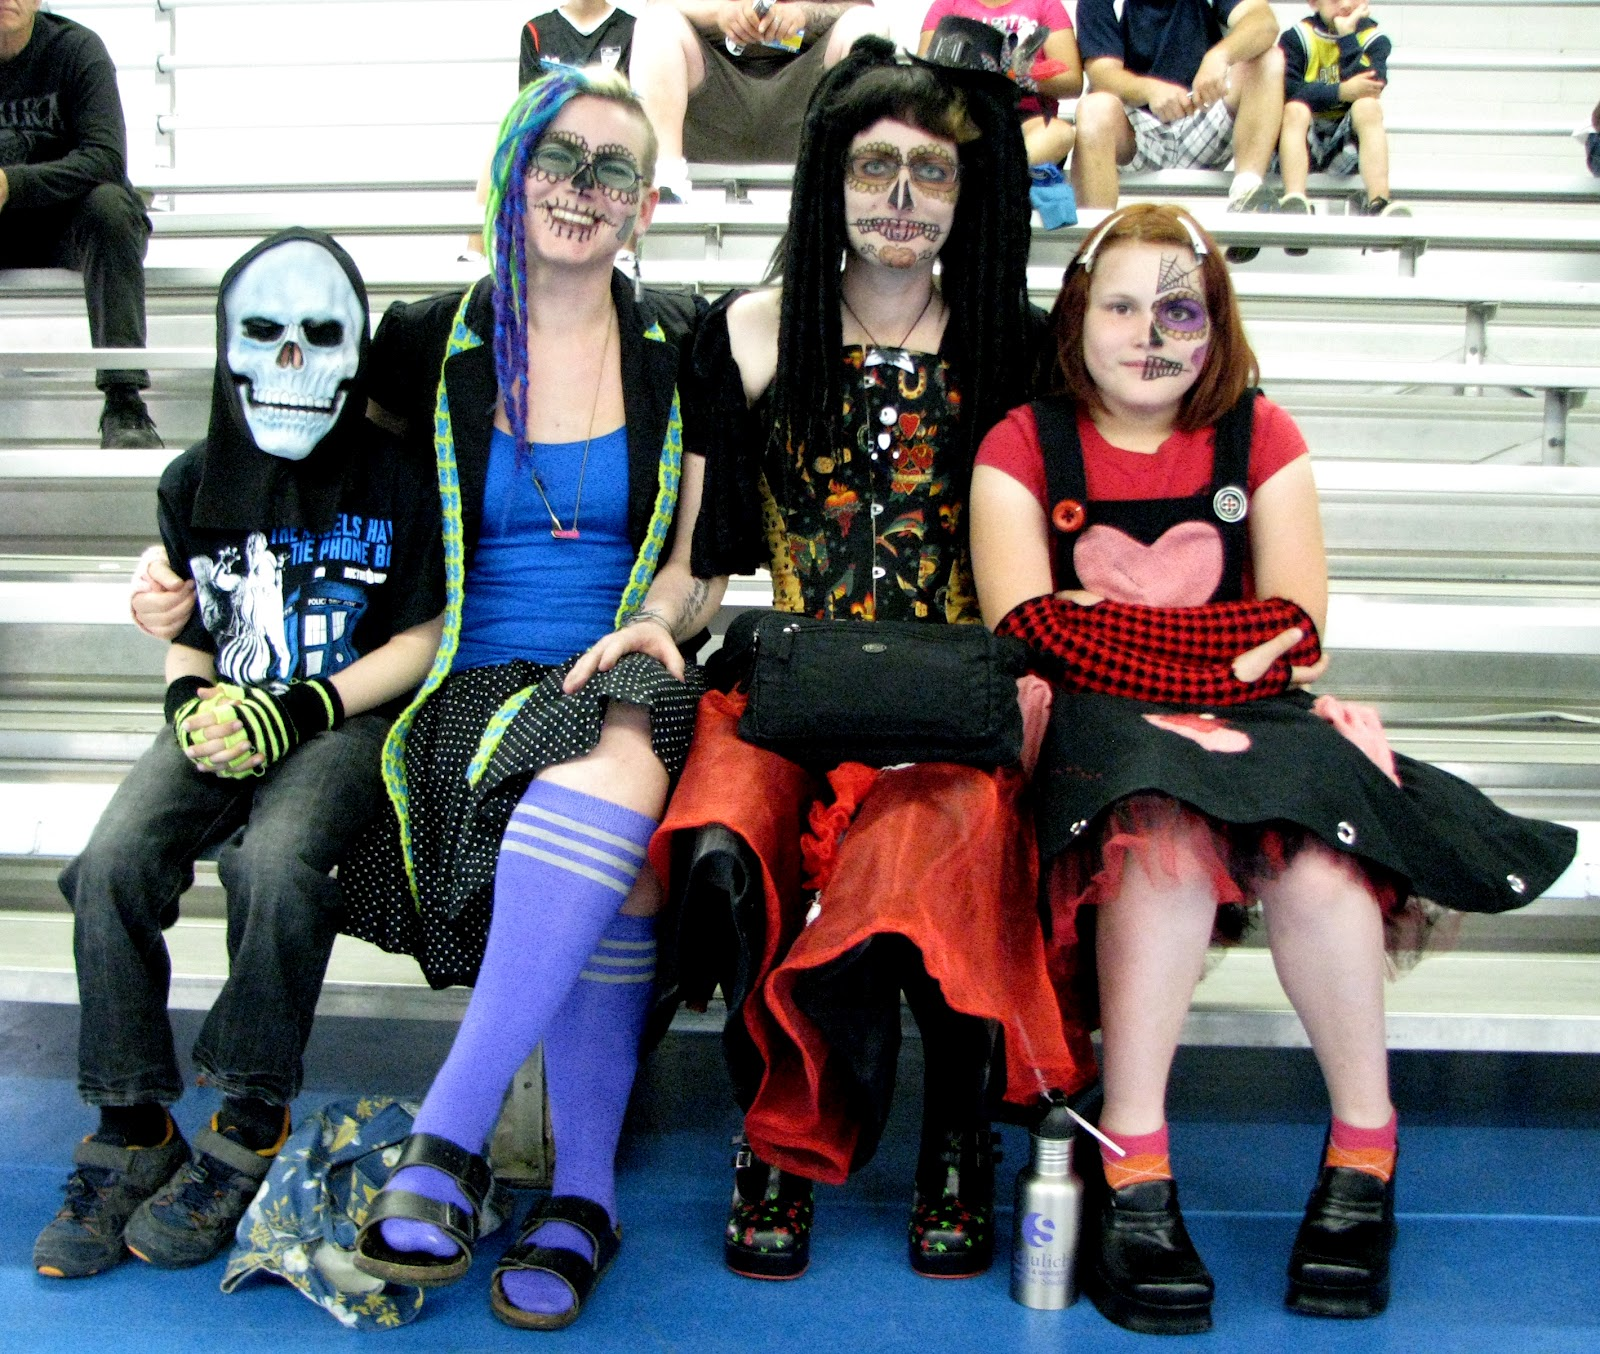 i had barely found a seat when i saw this group who had obviously been inspired by the mexican day of the dead i love to see people at roller derby who